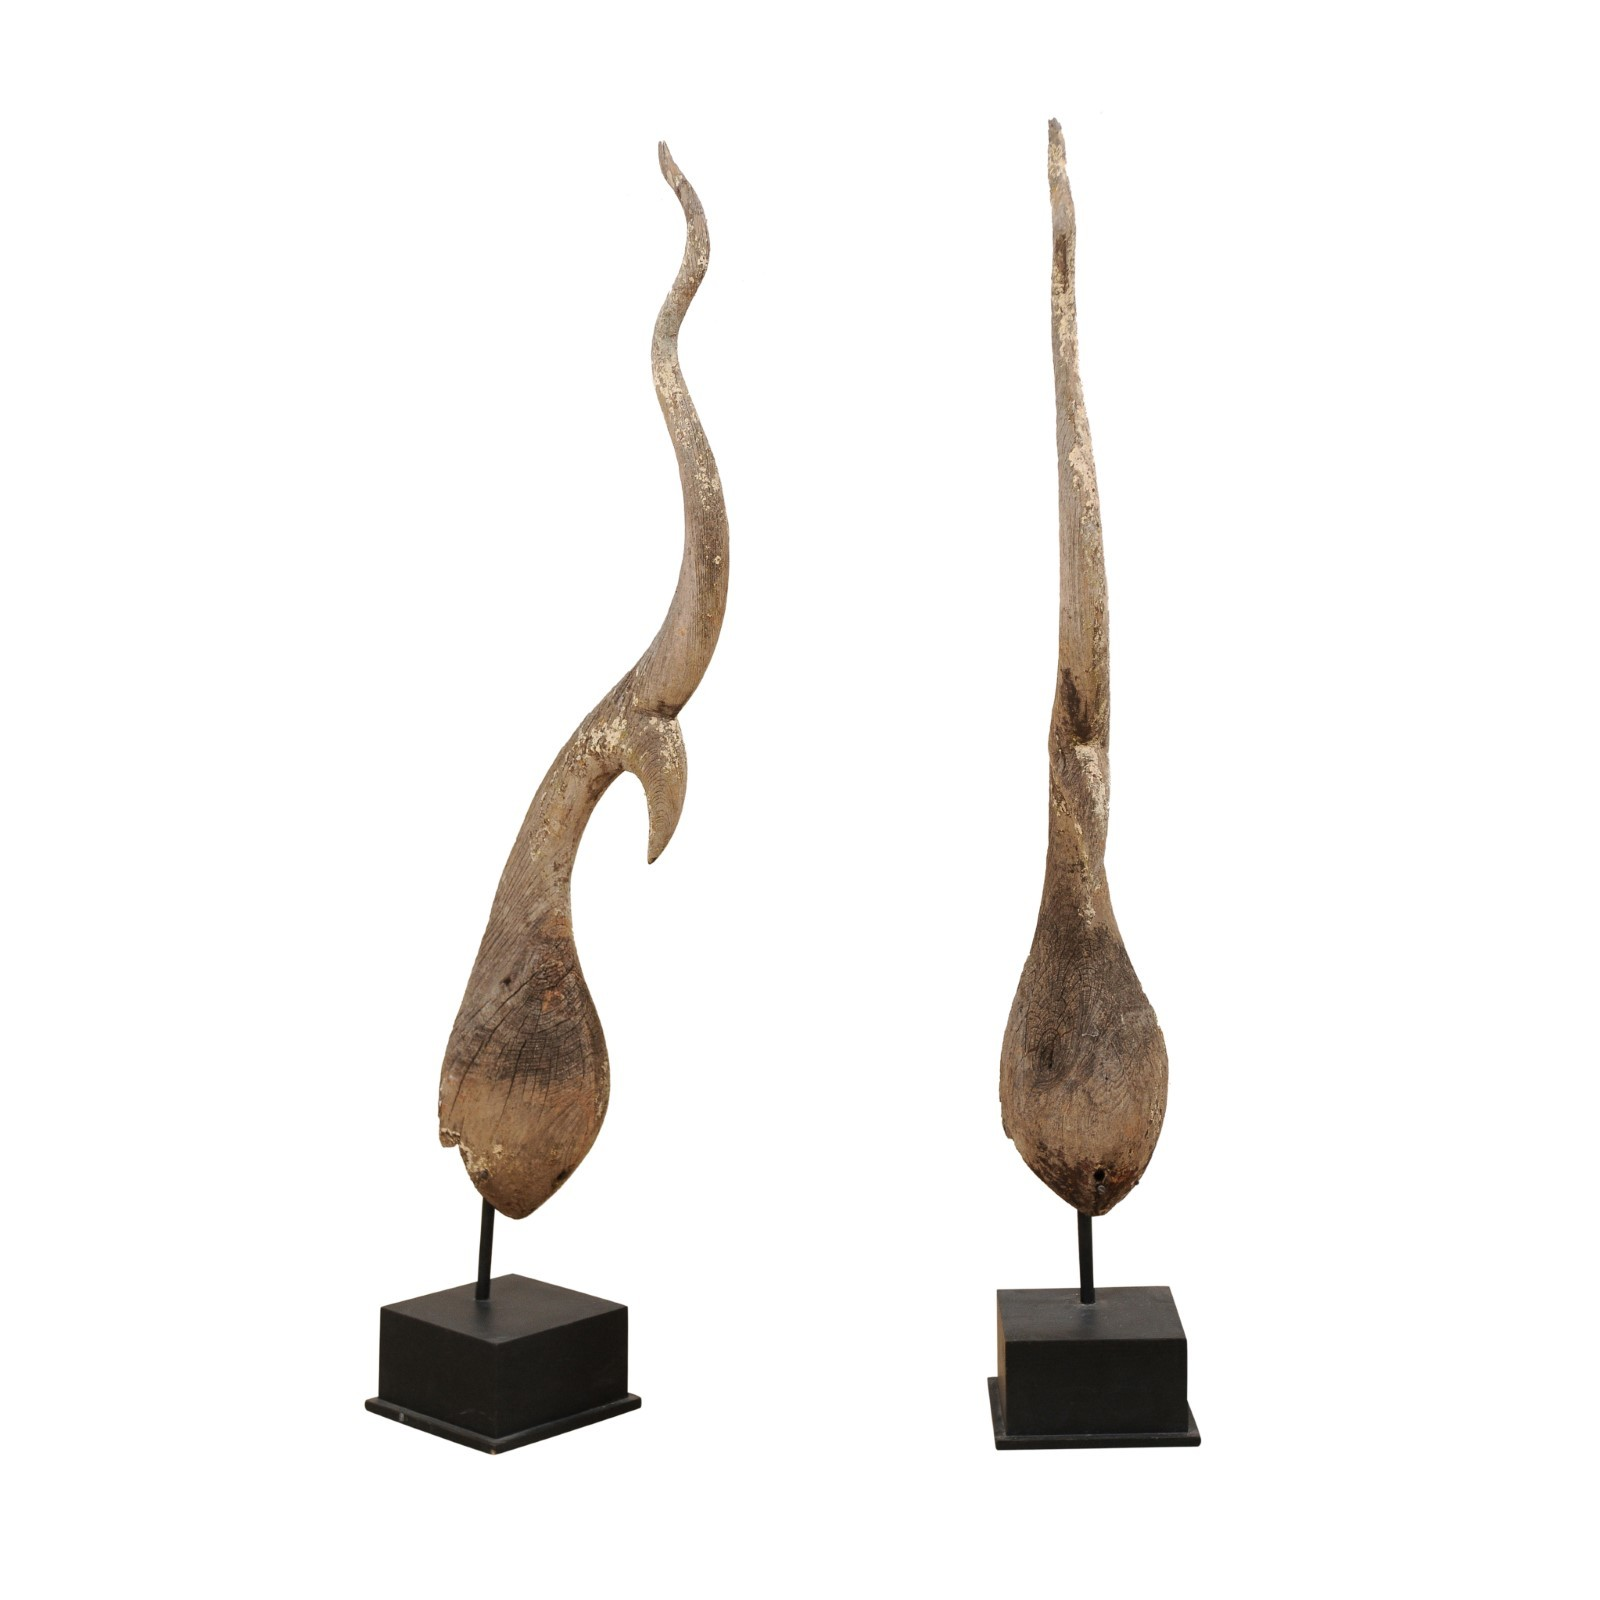 Pair 19th C. Chofa Temple Spires, 5.75 Ft